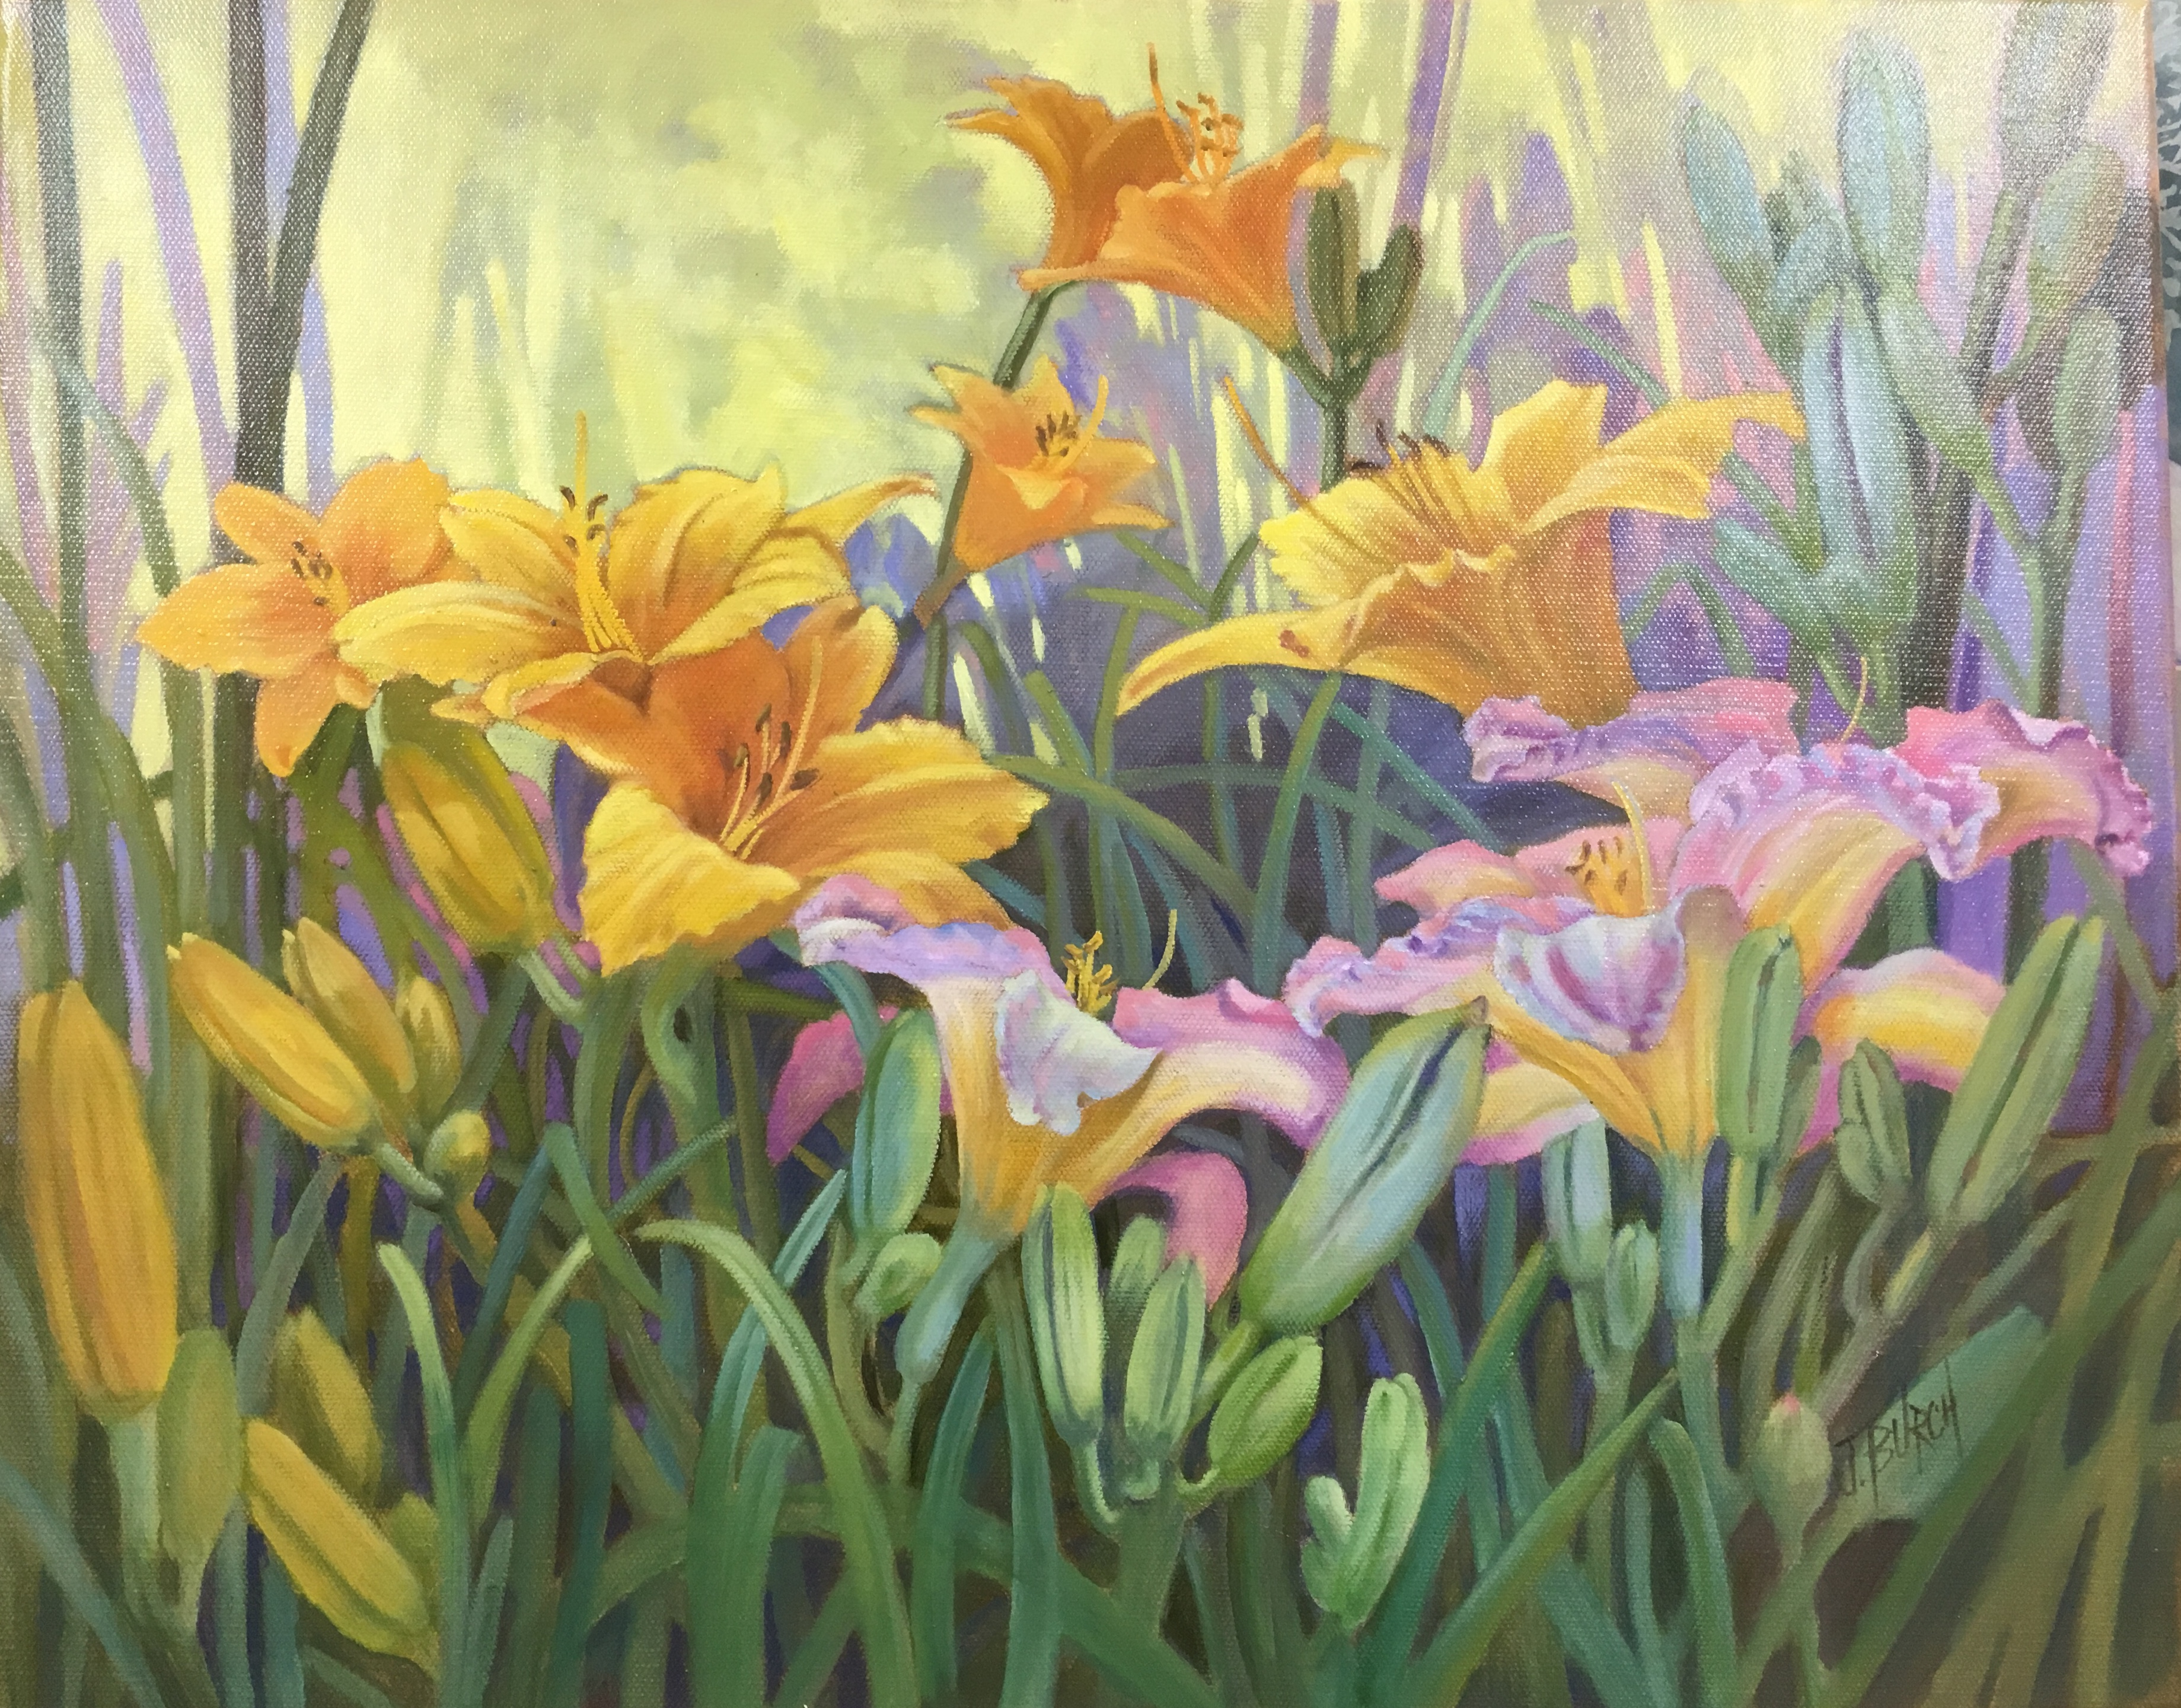 2018-Day Lily Heaven- oil on canvas- 16